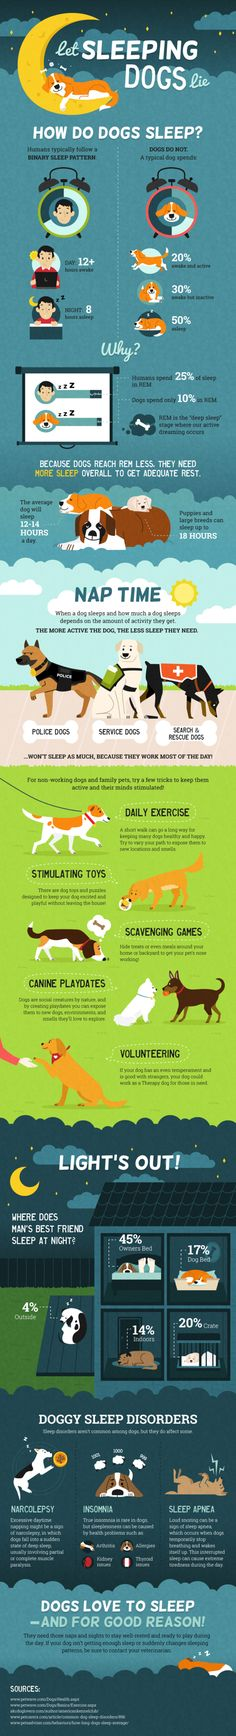 Facts about your dog's sleep habits!